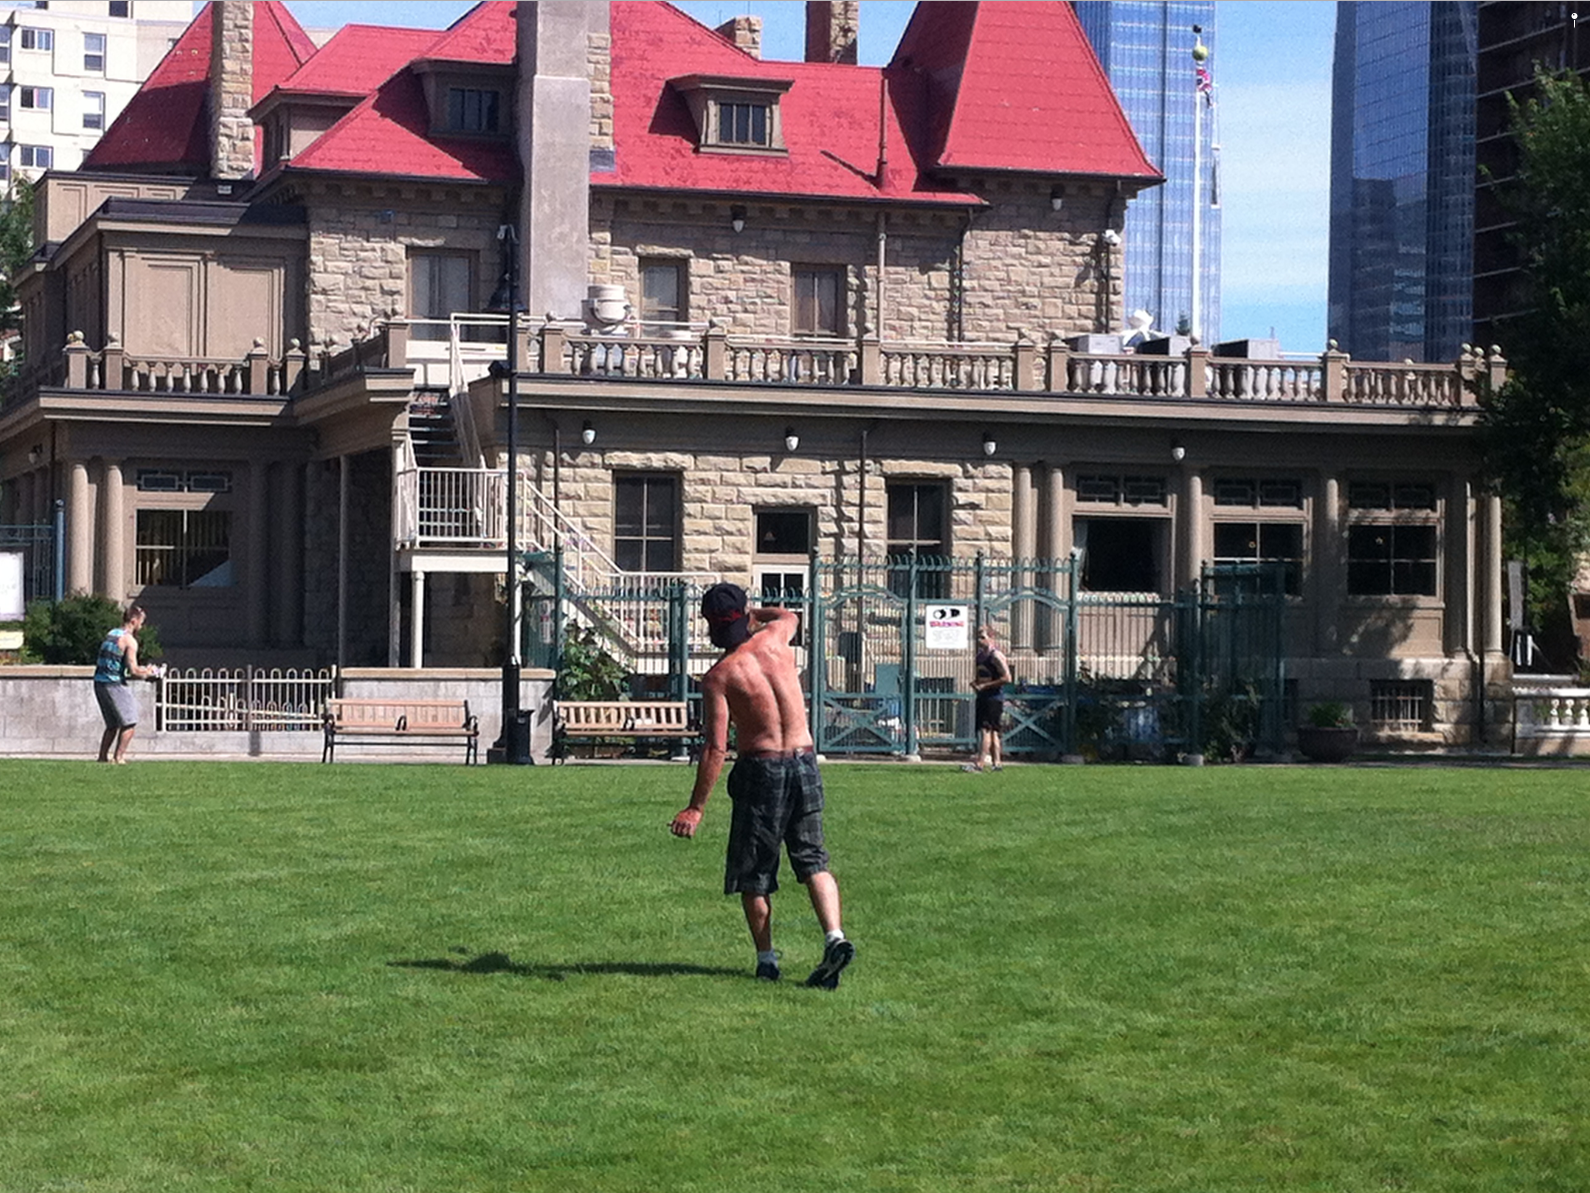 The lawn behind the Lougheed House makes for perfect playing field.